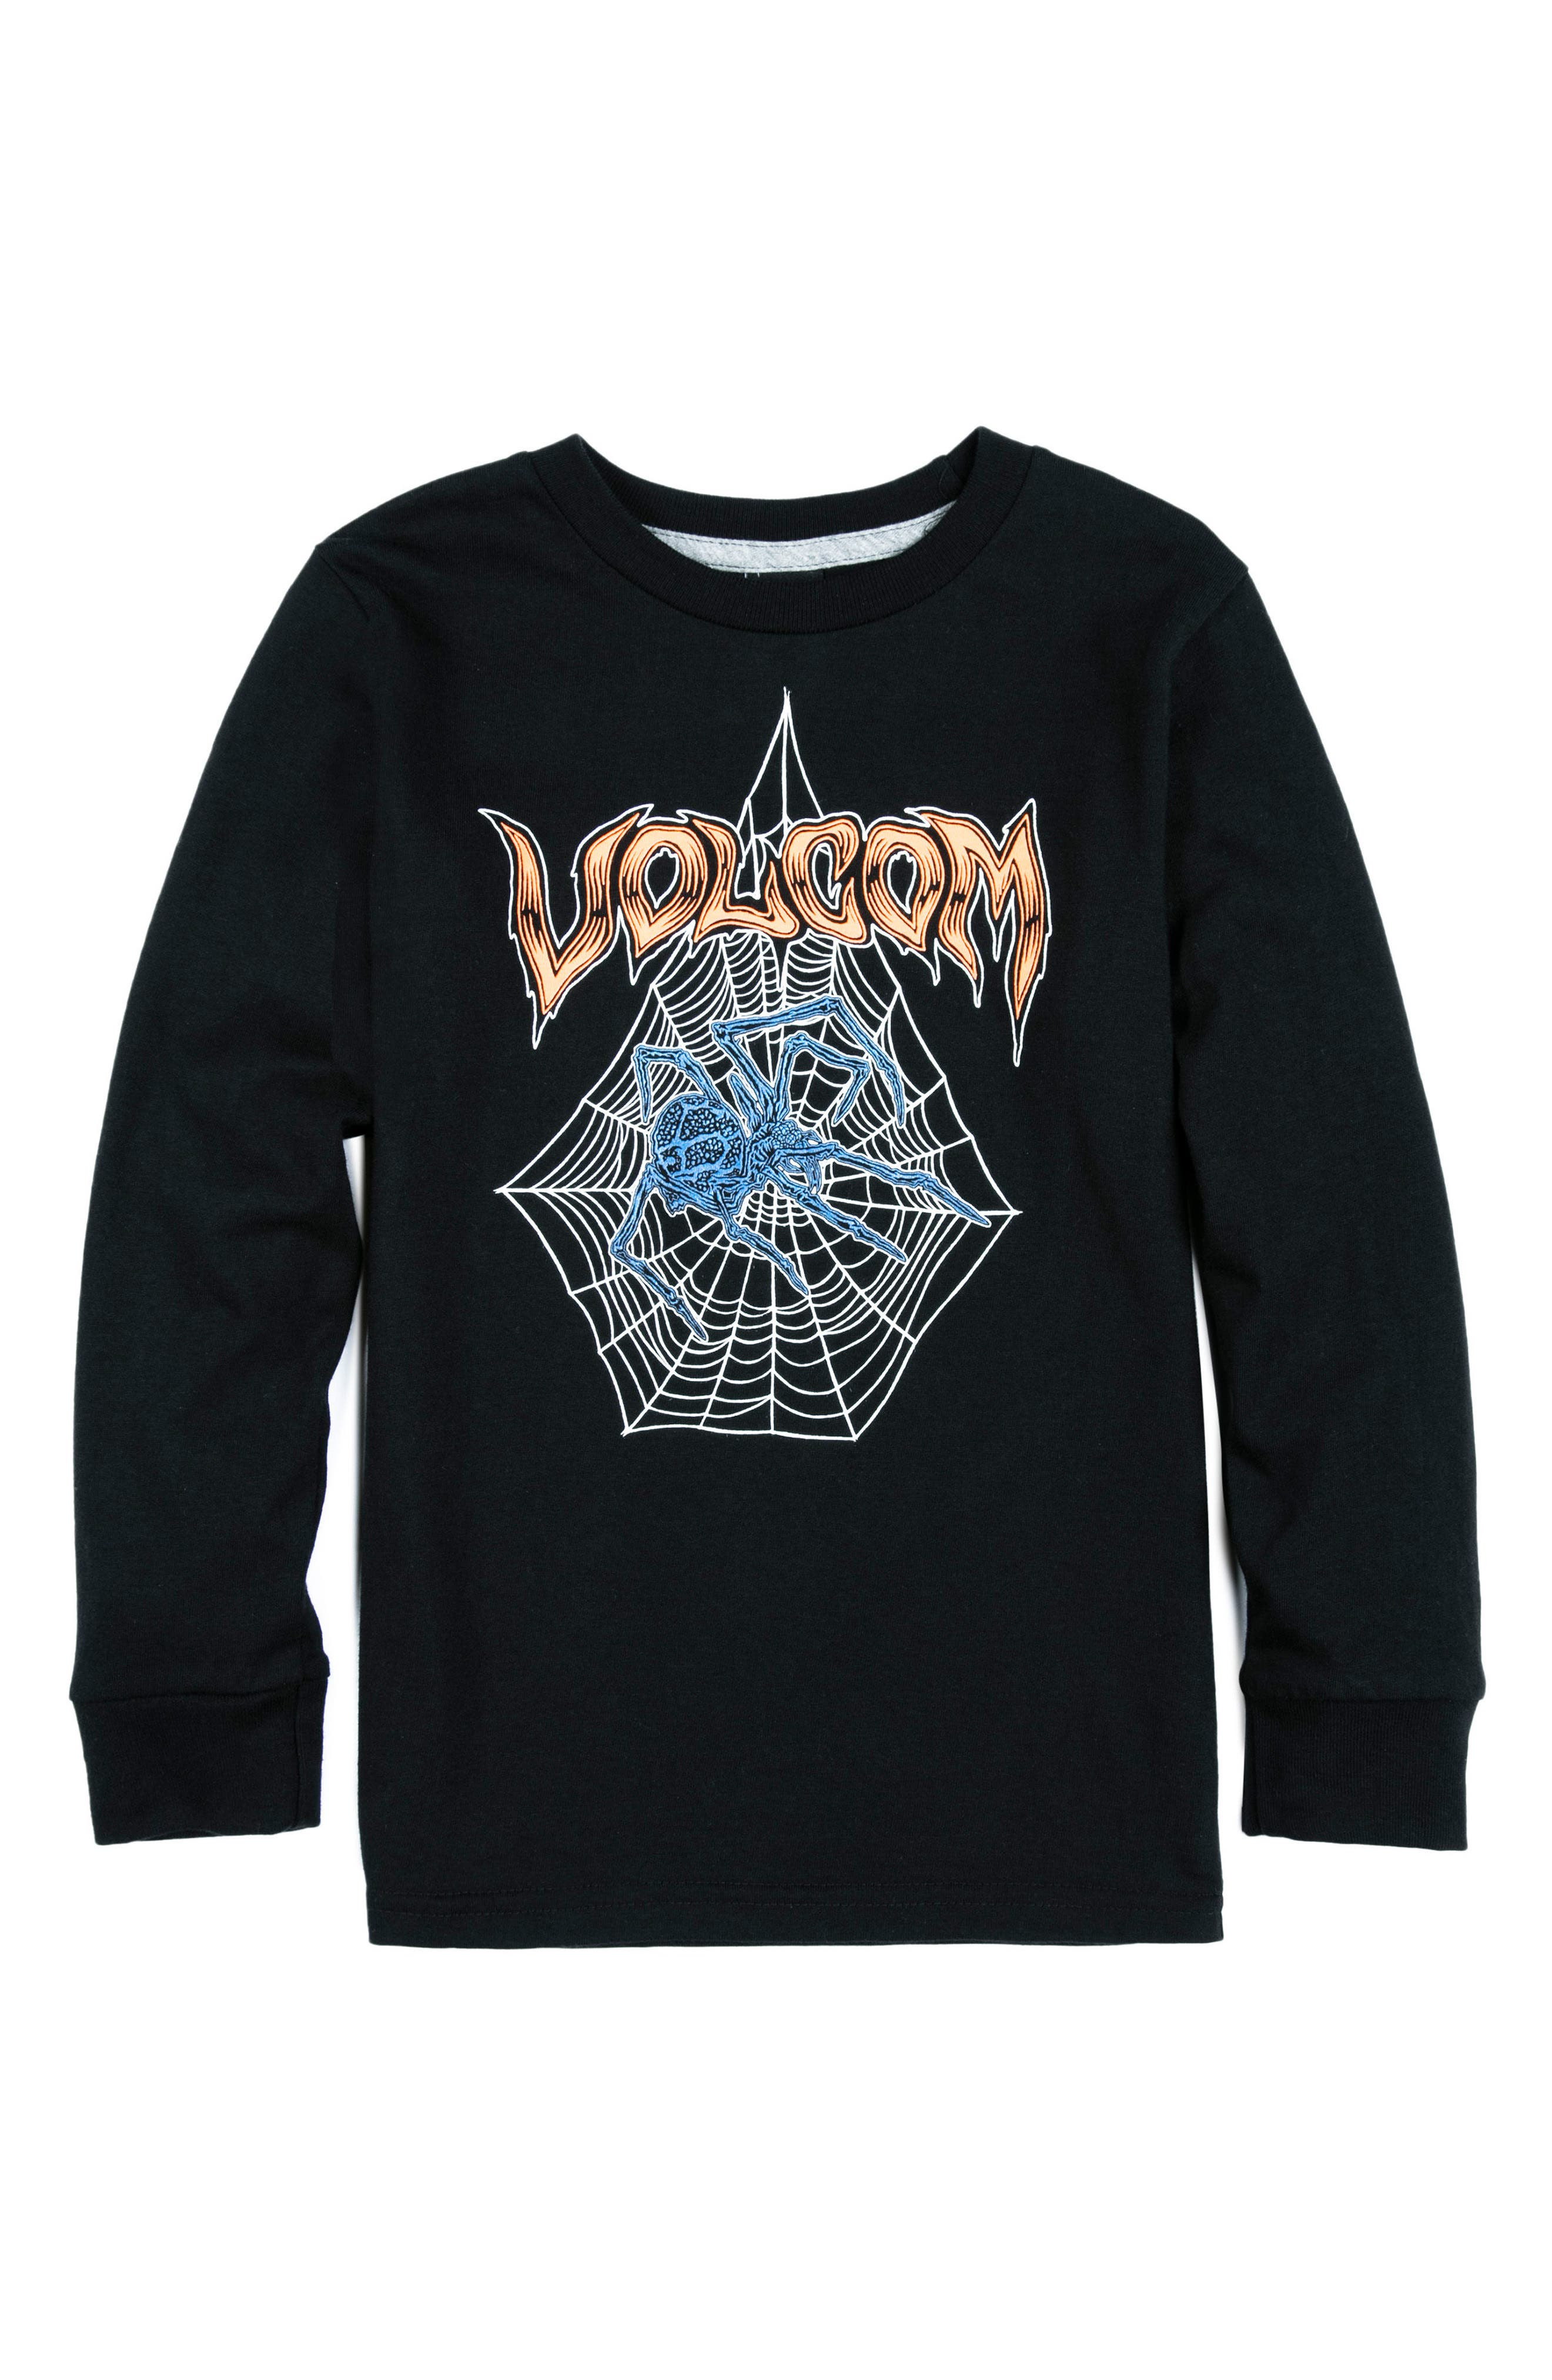 Venom Spider Glow-in-the-Dark Long Sleeve T-Shirt,                         Main,                         color,